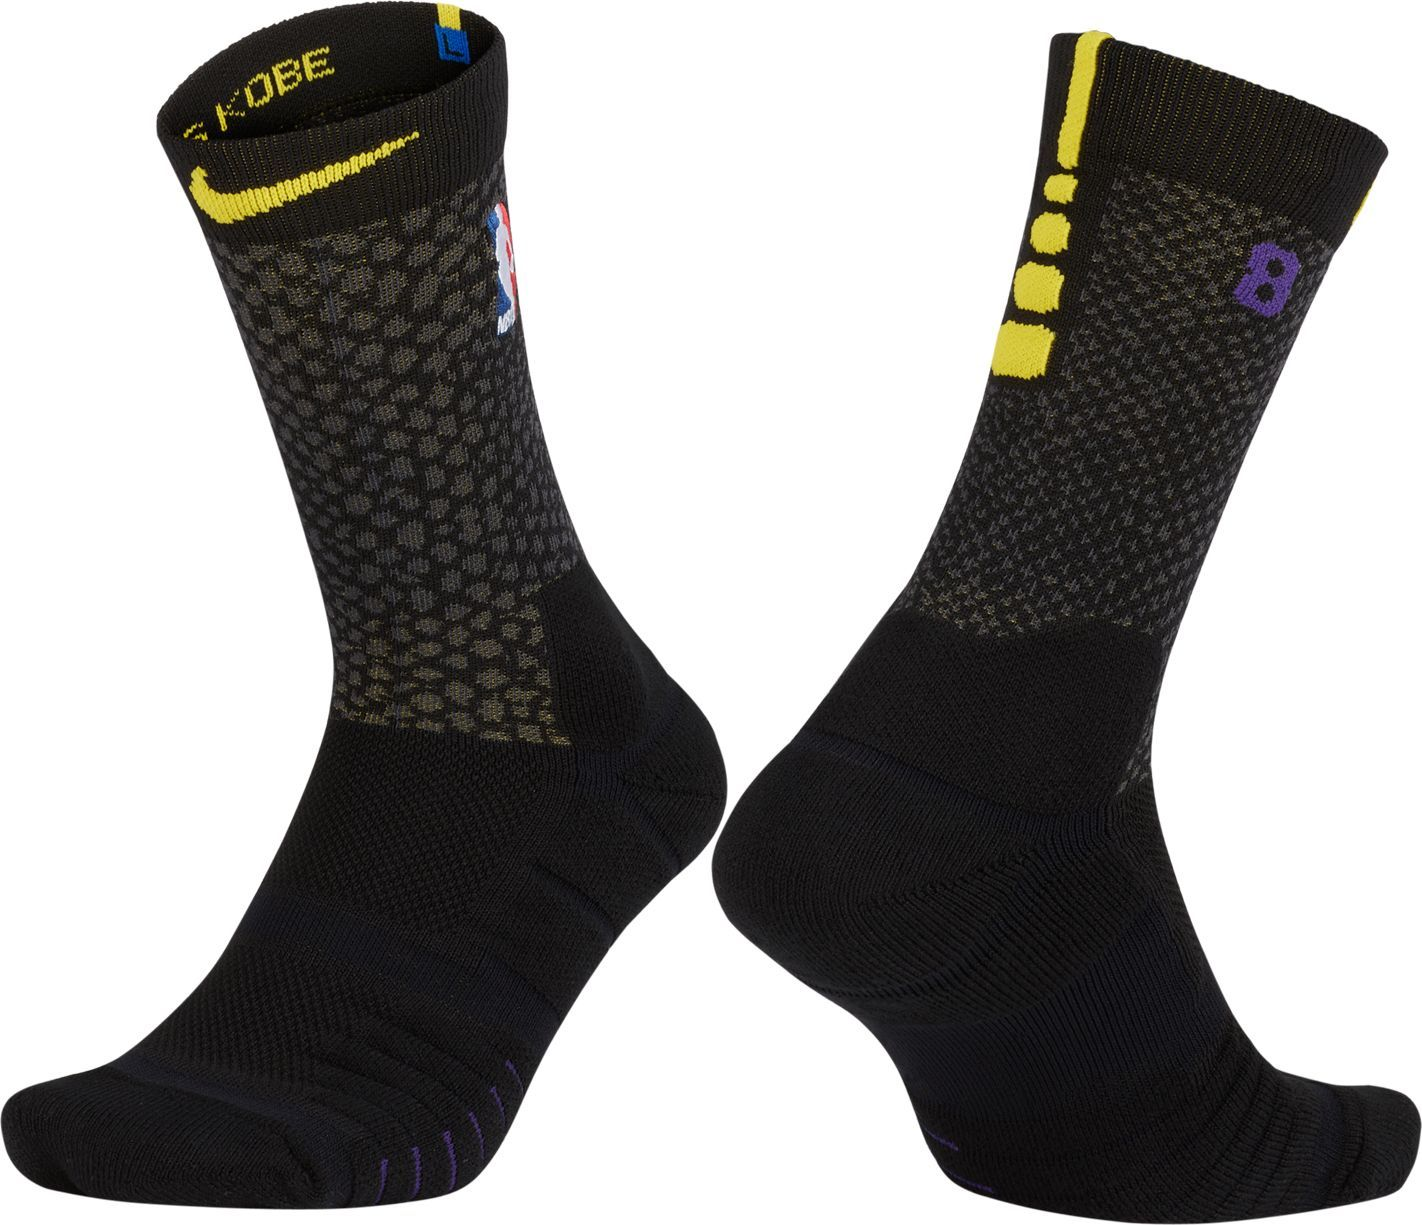 Nike Los Angeles Lakers City Edition Elite Quick NBA Crew Socks, Black c995c5c6ca0d